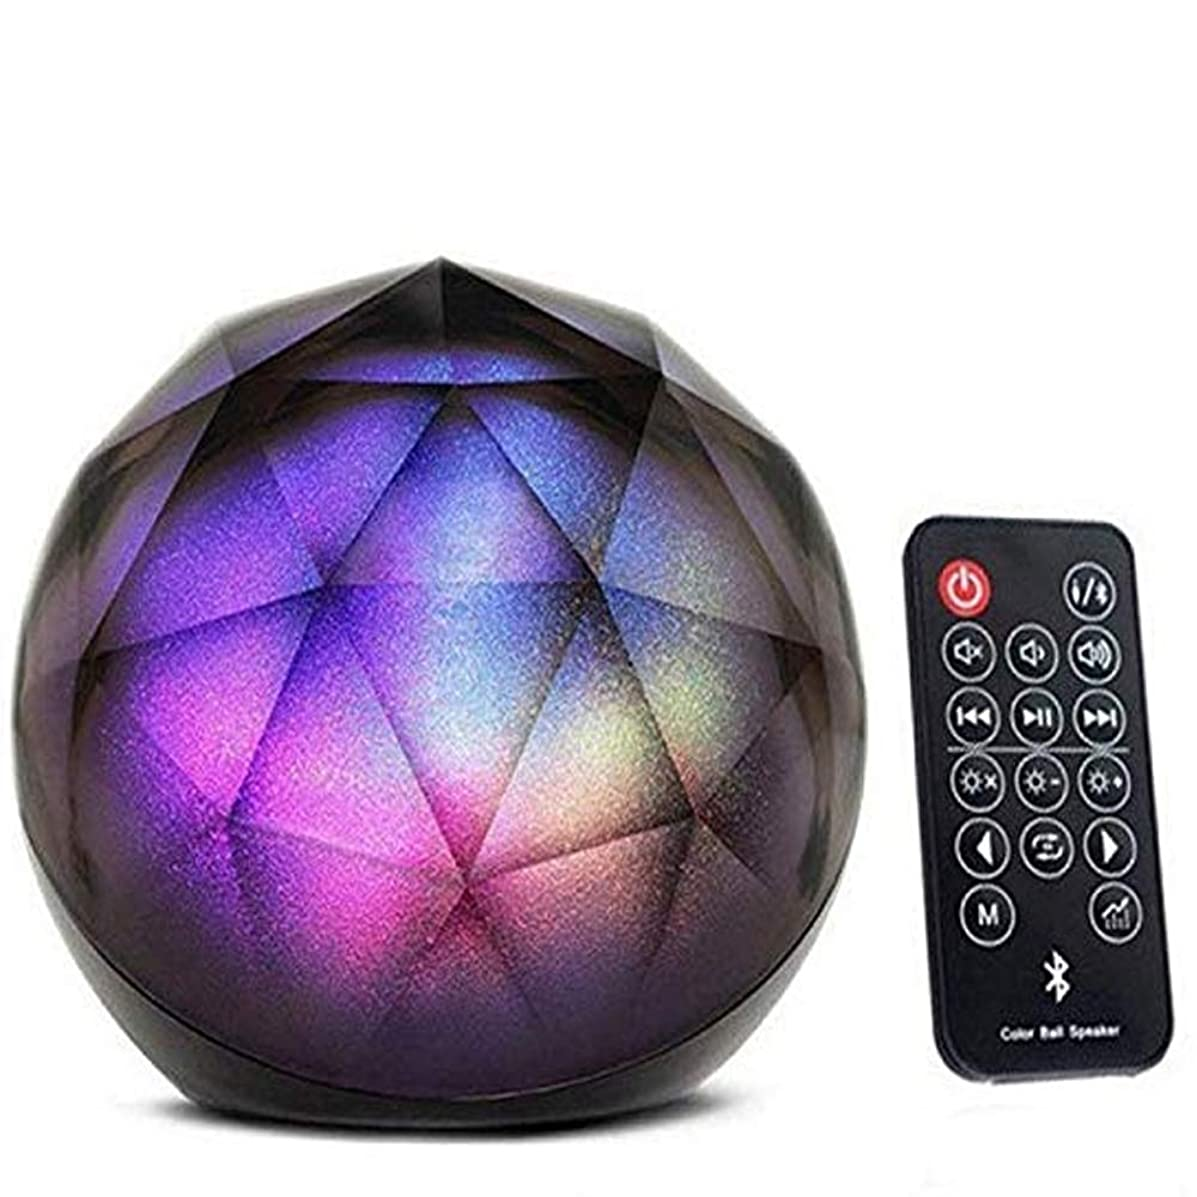 Portable Bluetooth Speakers, BOOMER VIVI Wireless Mini LED Colorful Crystal Stereo Ball Speakers with Remote Control,Party Dance Light Aux Input TF Card Music Player Com iPhone Samsung Laptop. (Black)